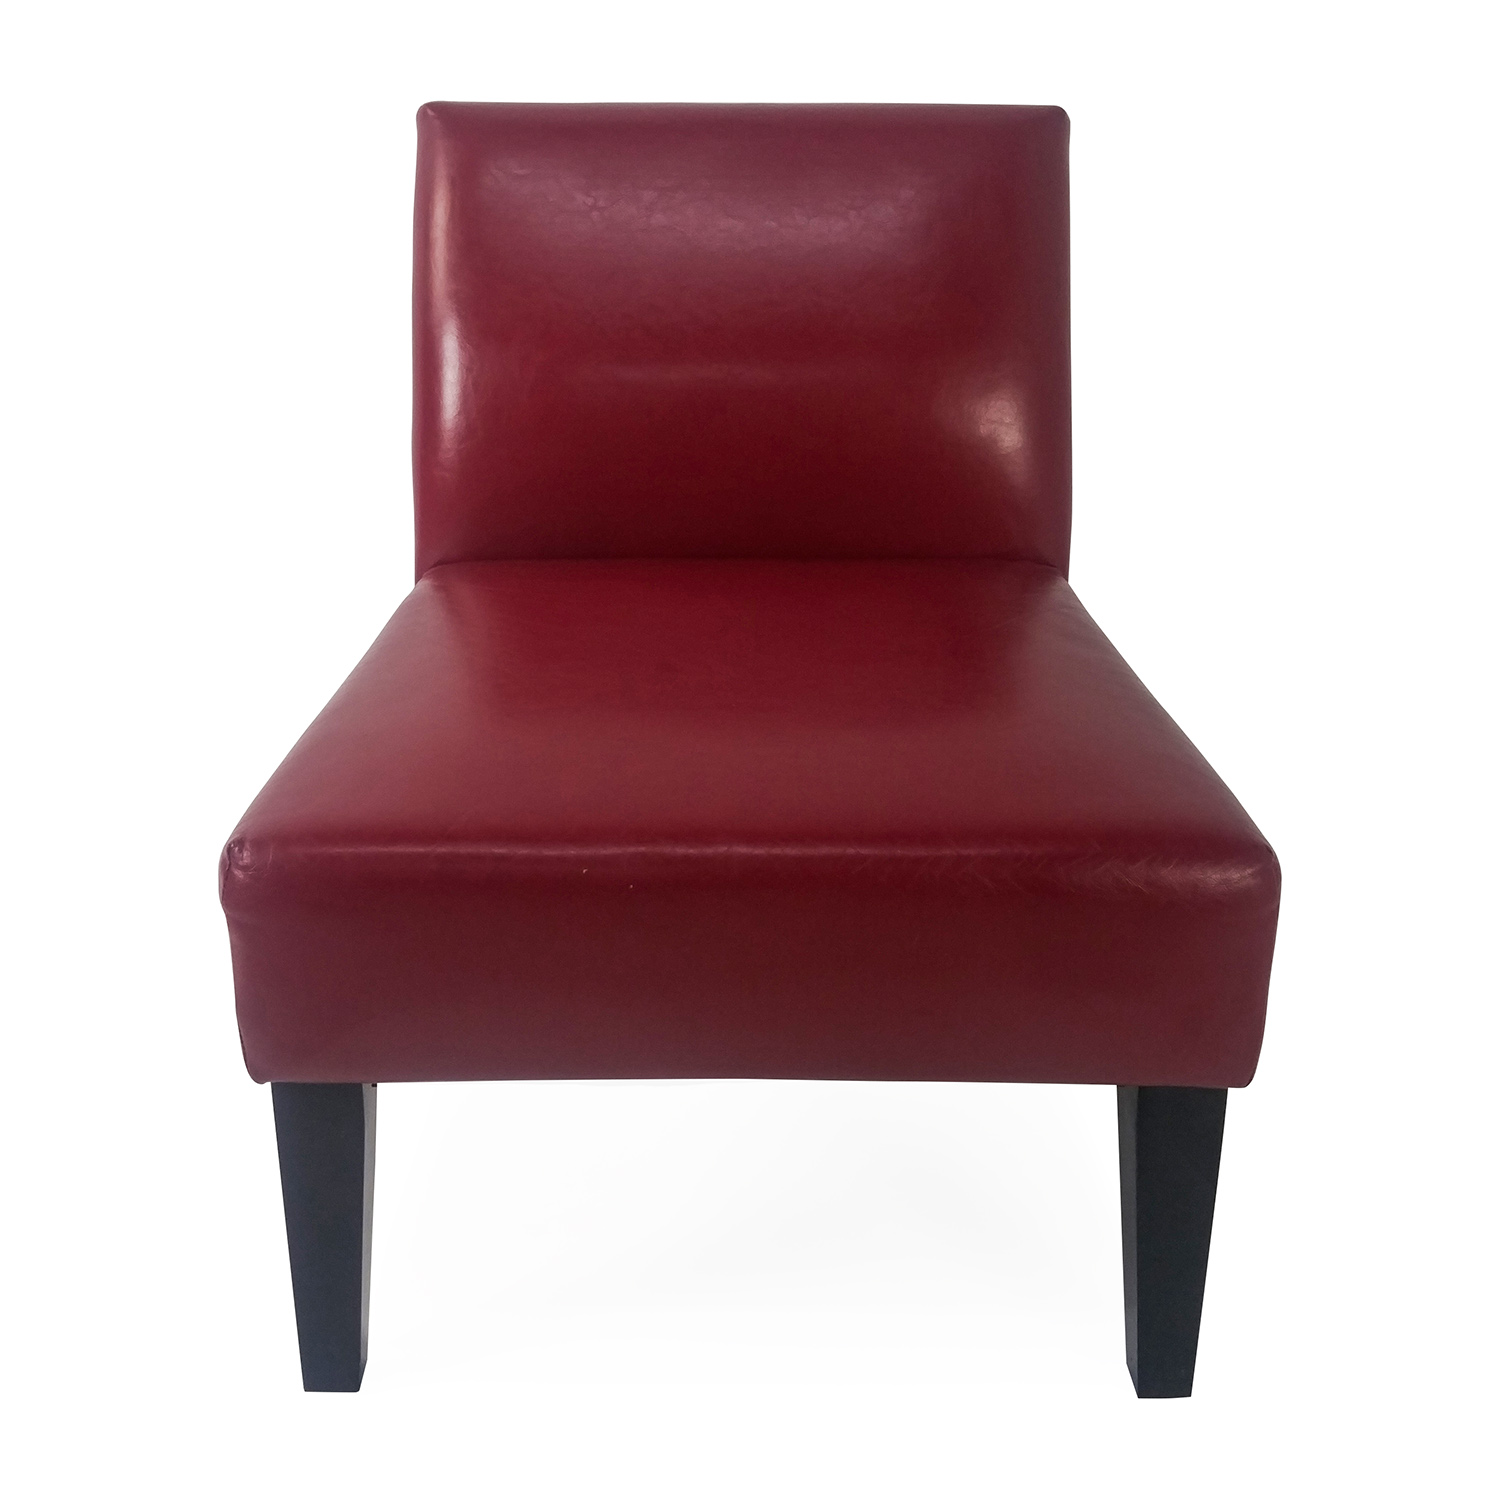 Red Slipper Chair 47 Off Crate And Barrel Crate And Barrel Lowe Onyx Black